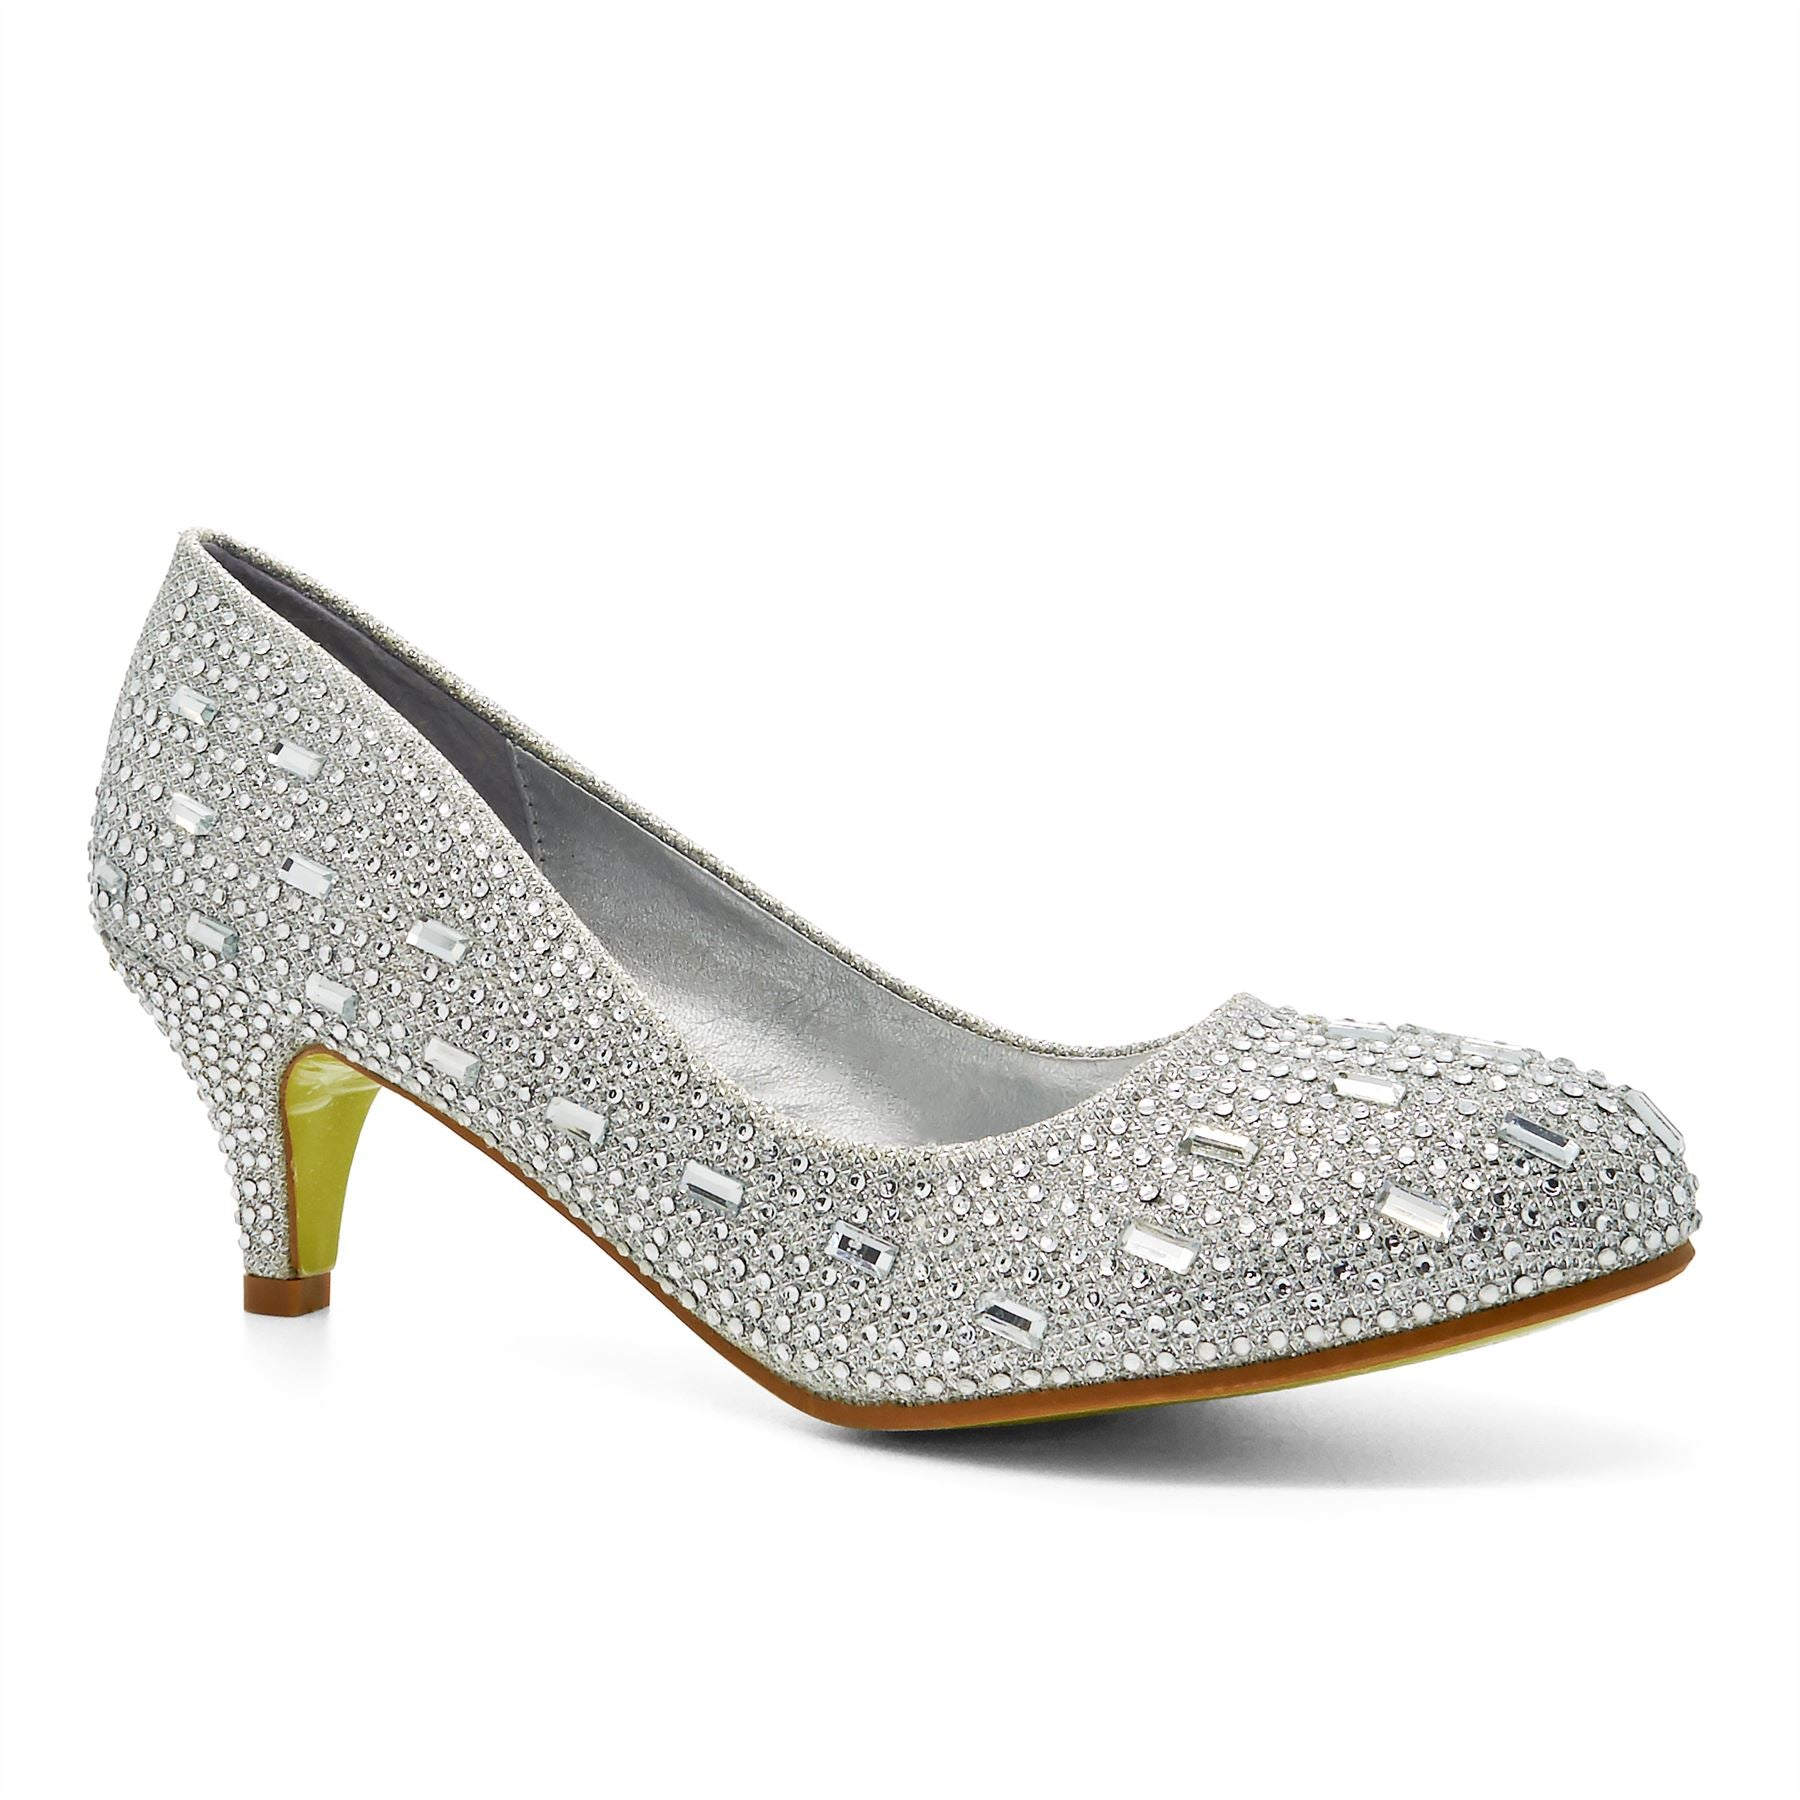 b620878e9a23 Silver Diamante Kitten Heeled Court Shoes – London Footwear